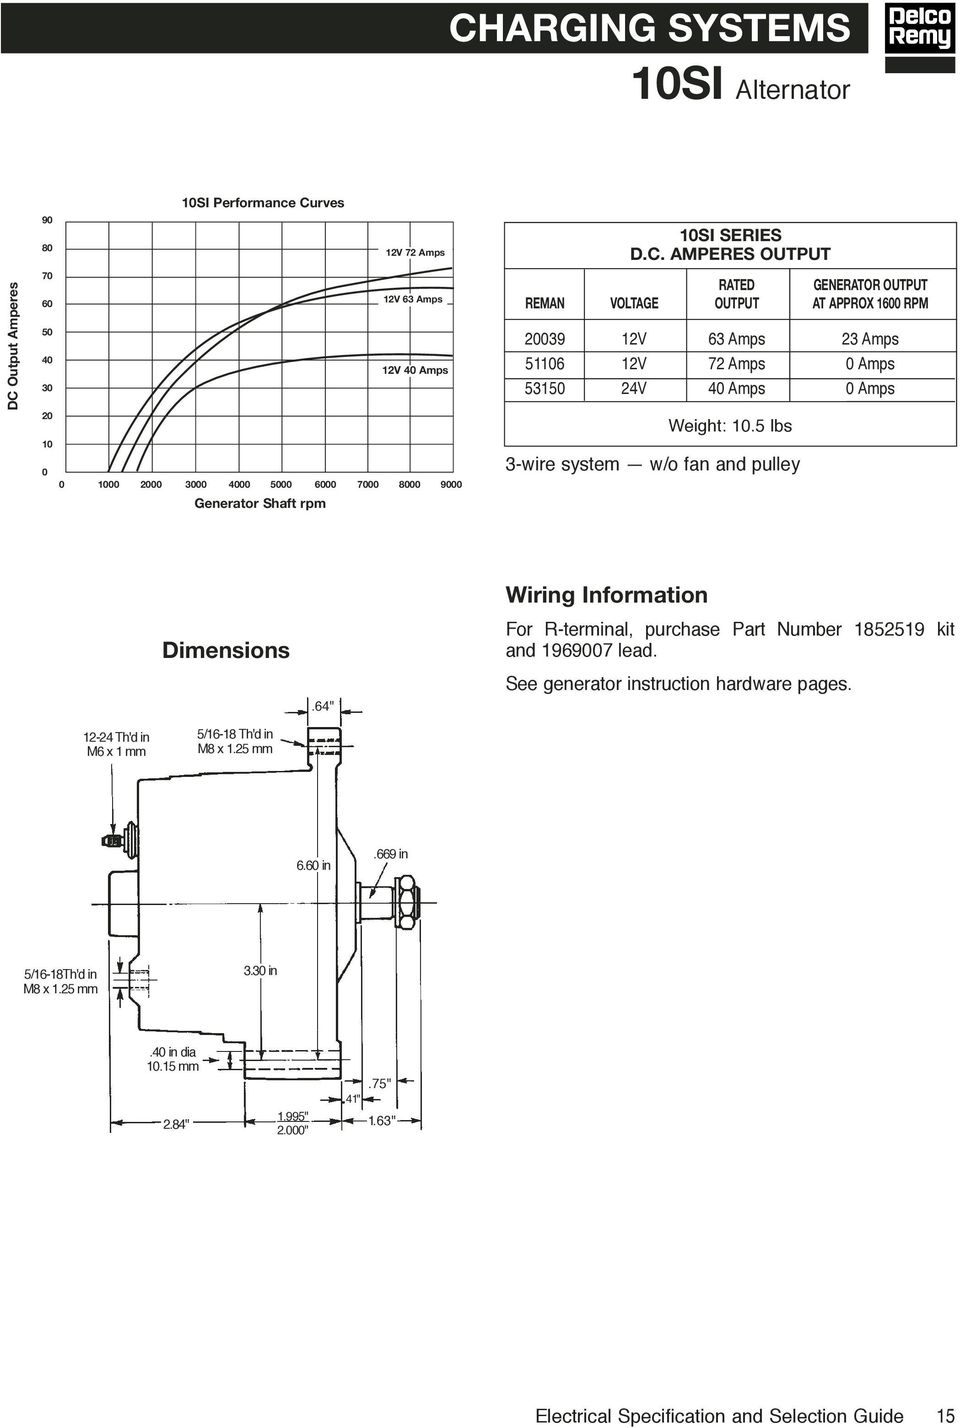 cs130 alternator wiring diagram 1992 jeep wrangler electrical specifications & selection guide - pdf